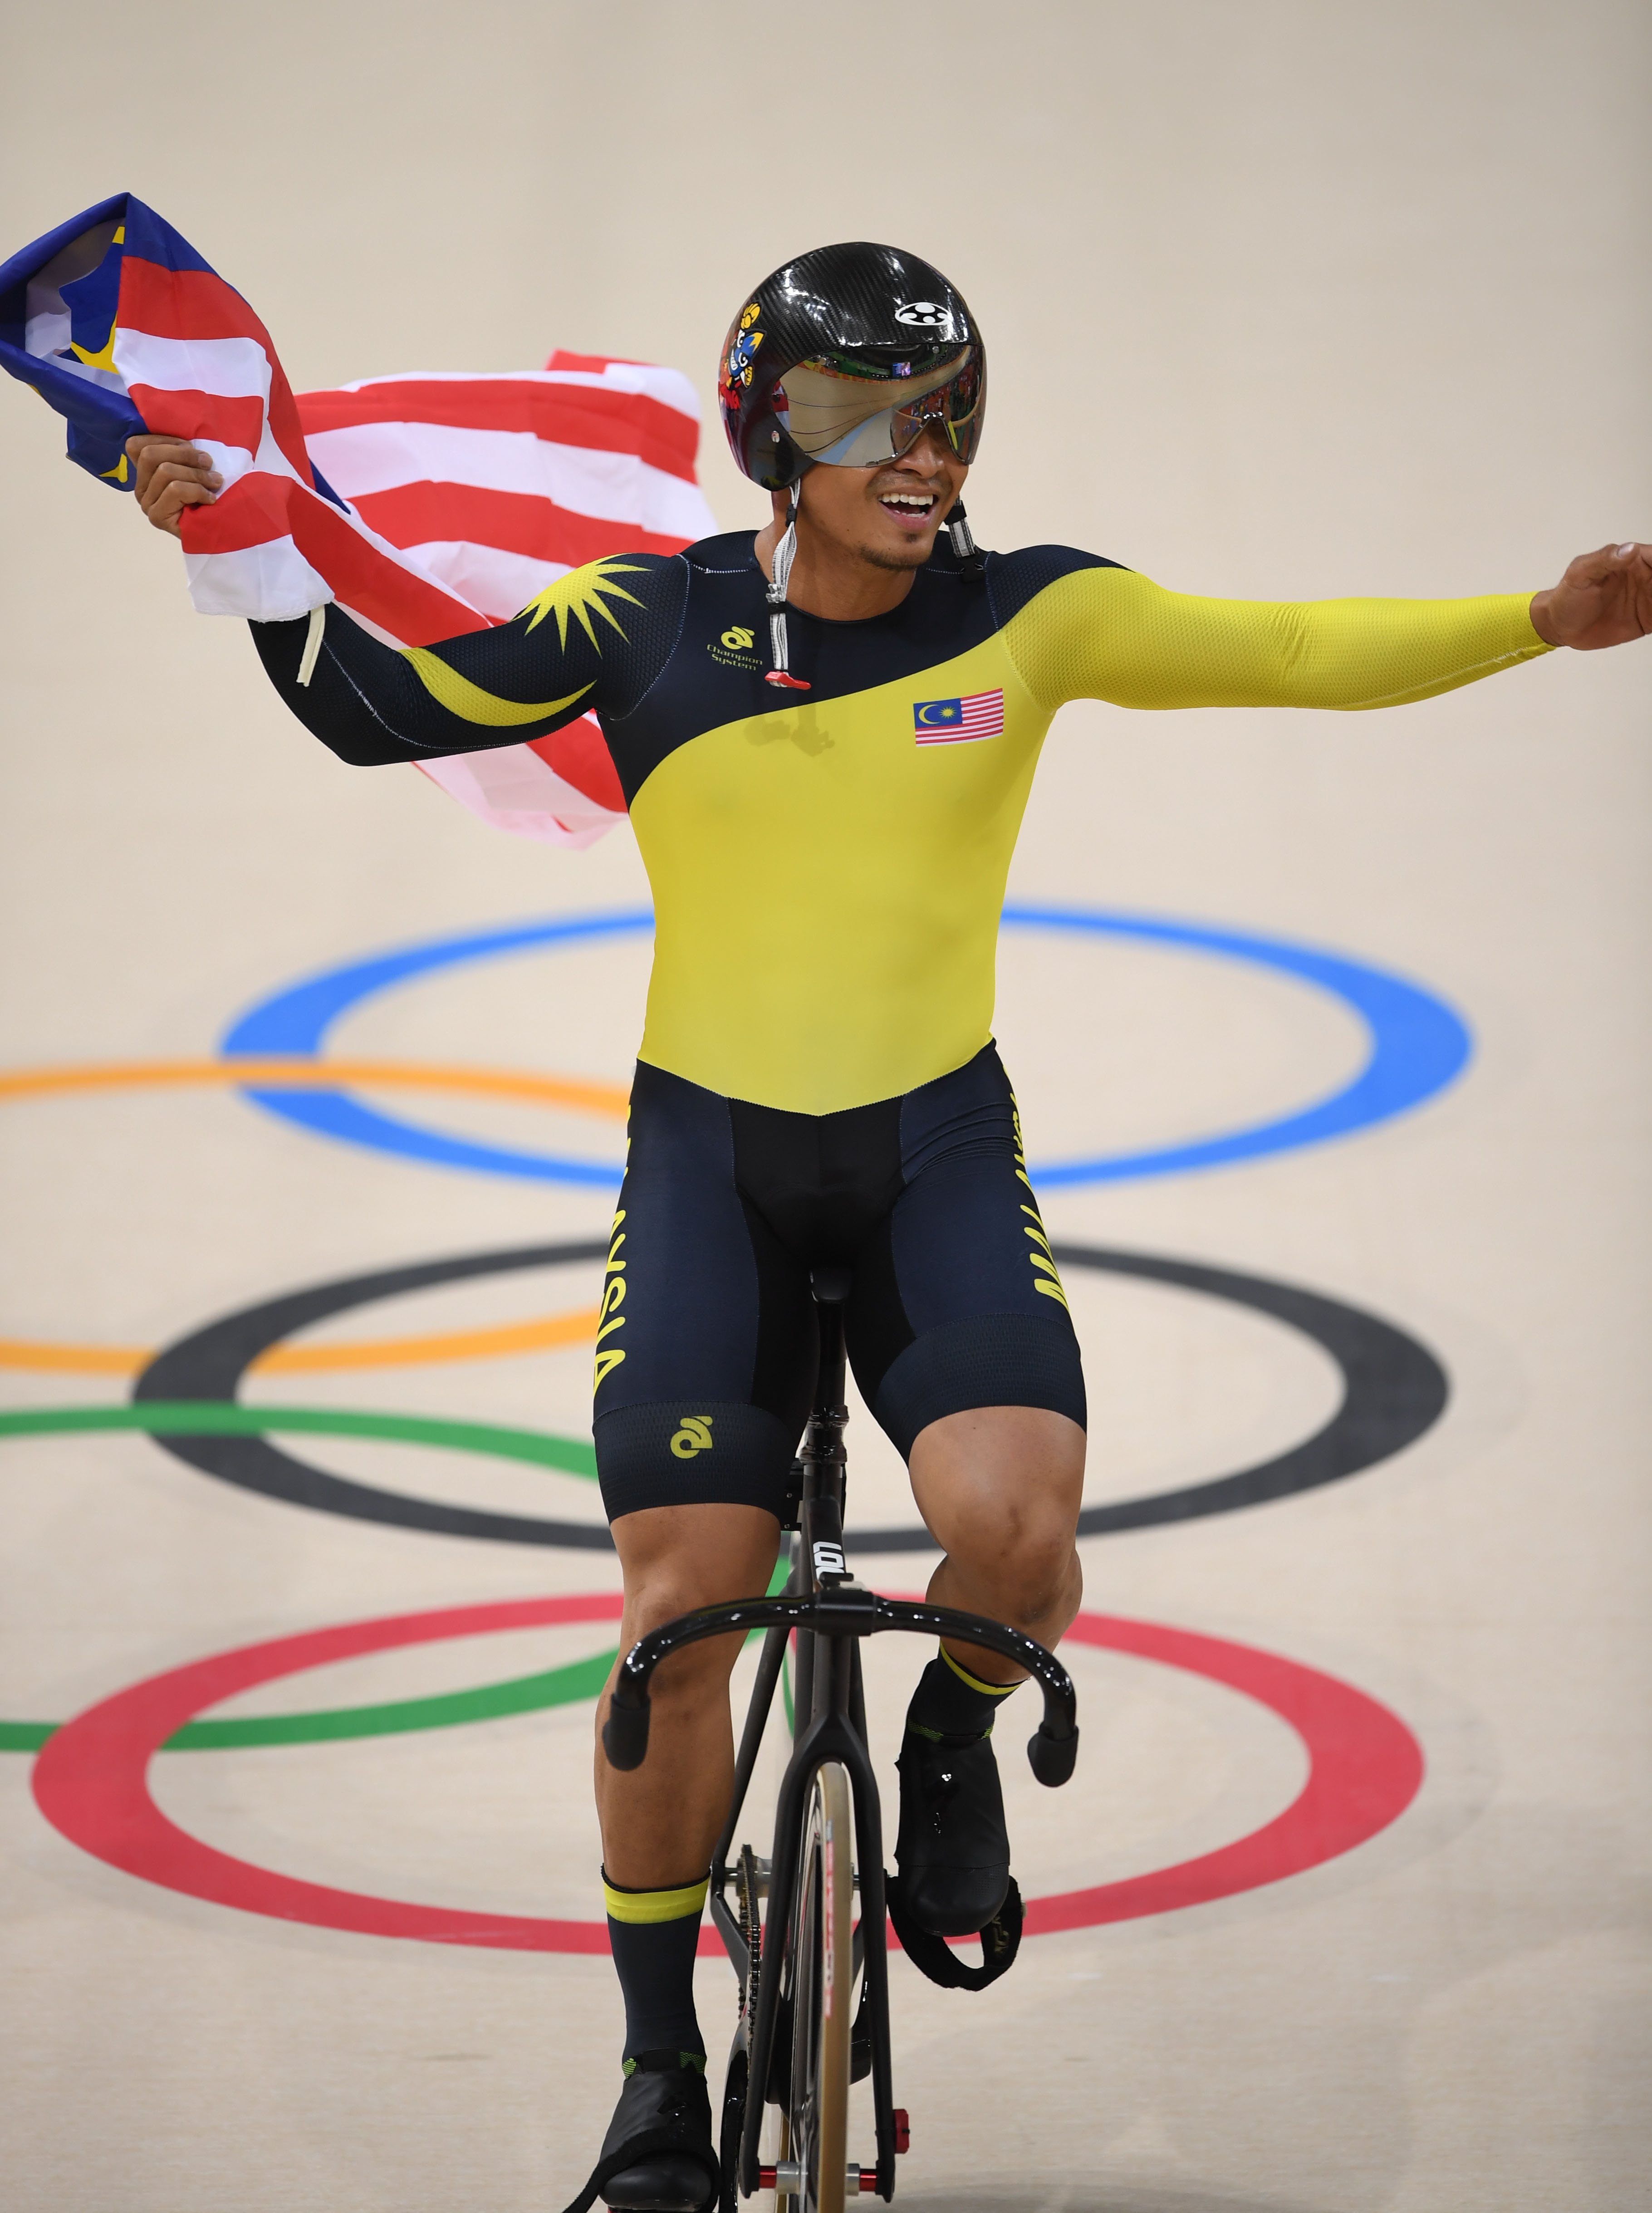 Malaysia's Azizulhasni Awang celebrates with a flag after winning bronze in the Men's Keirin finals track cycling event at the Velodrome during the Rio 2016 Olympic Games in Rio de Janeiro on August 16, 2016. / AFP PHOTO / Eric FEFERBERG